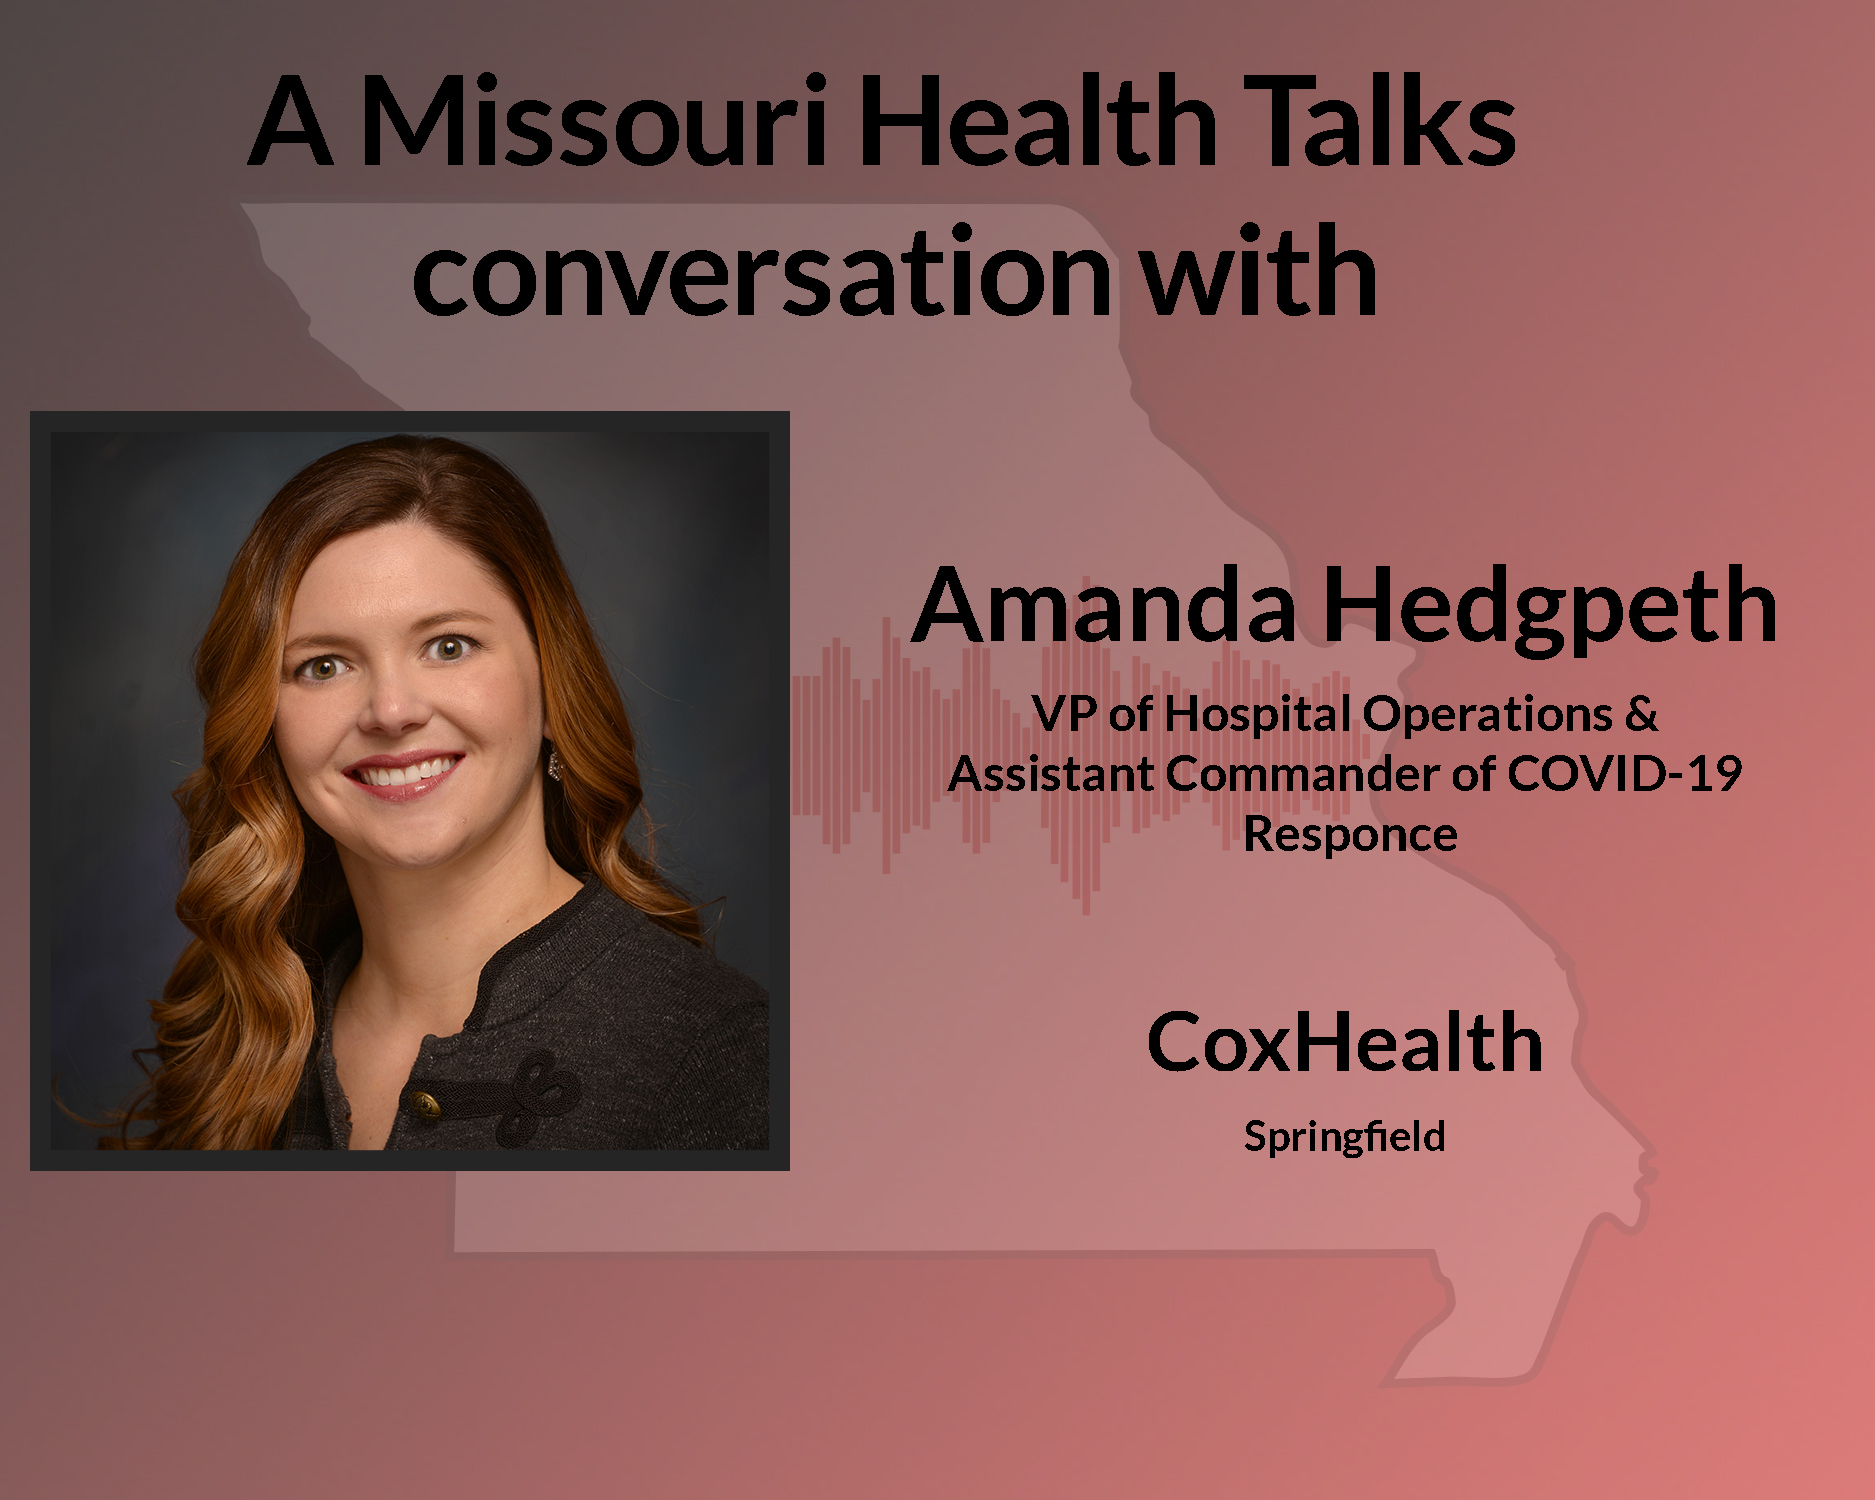 In SW Missouri: 'It's Becoming a Staffing Challenge to Take Care of the Rising Number of COVID Patients'